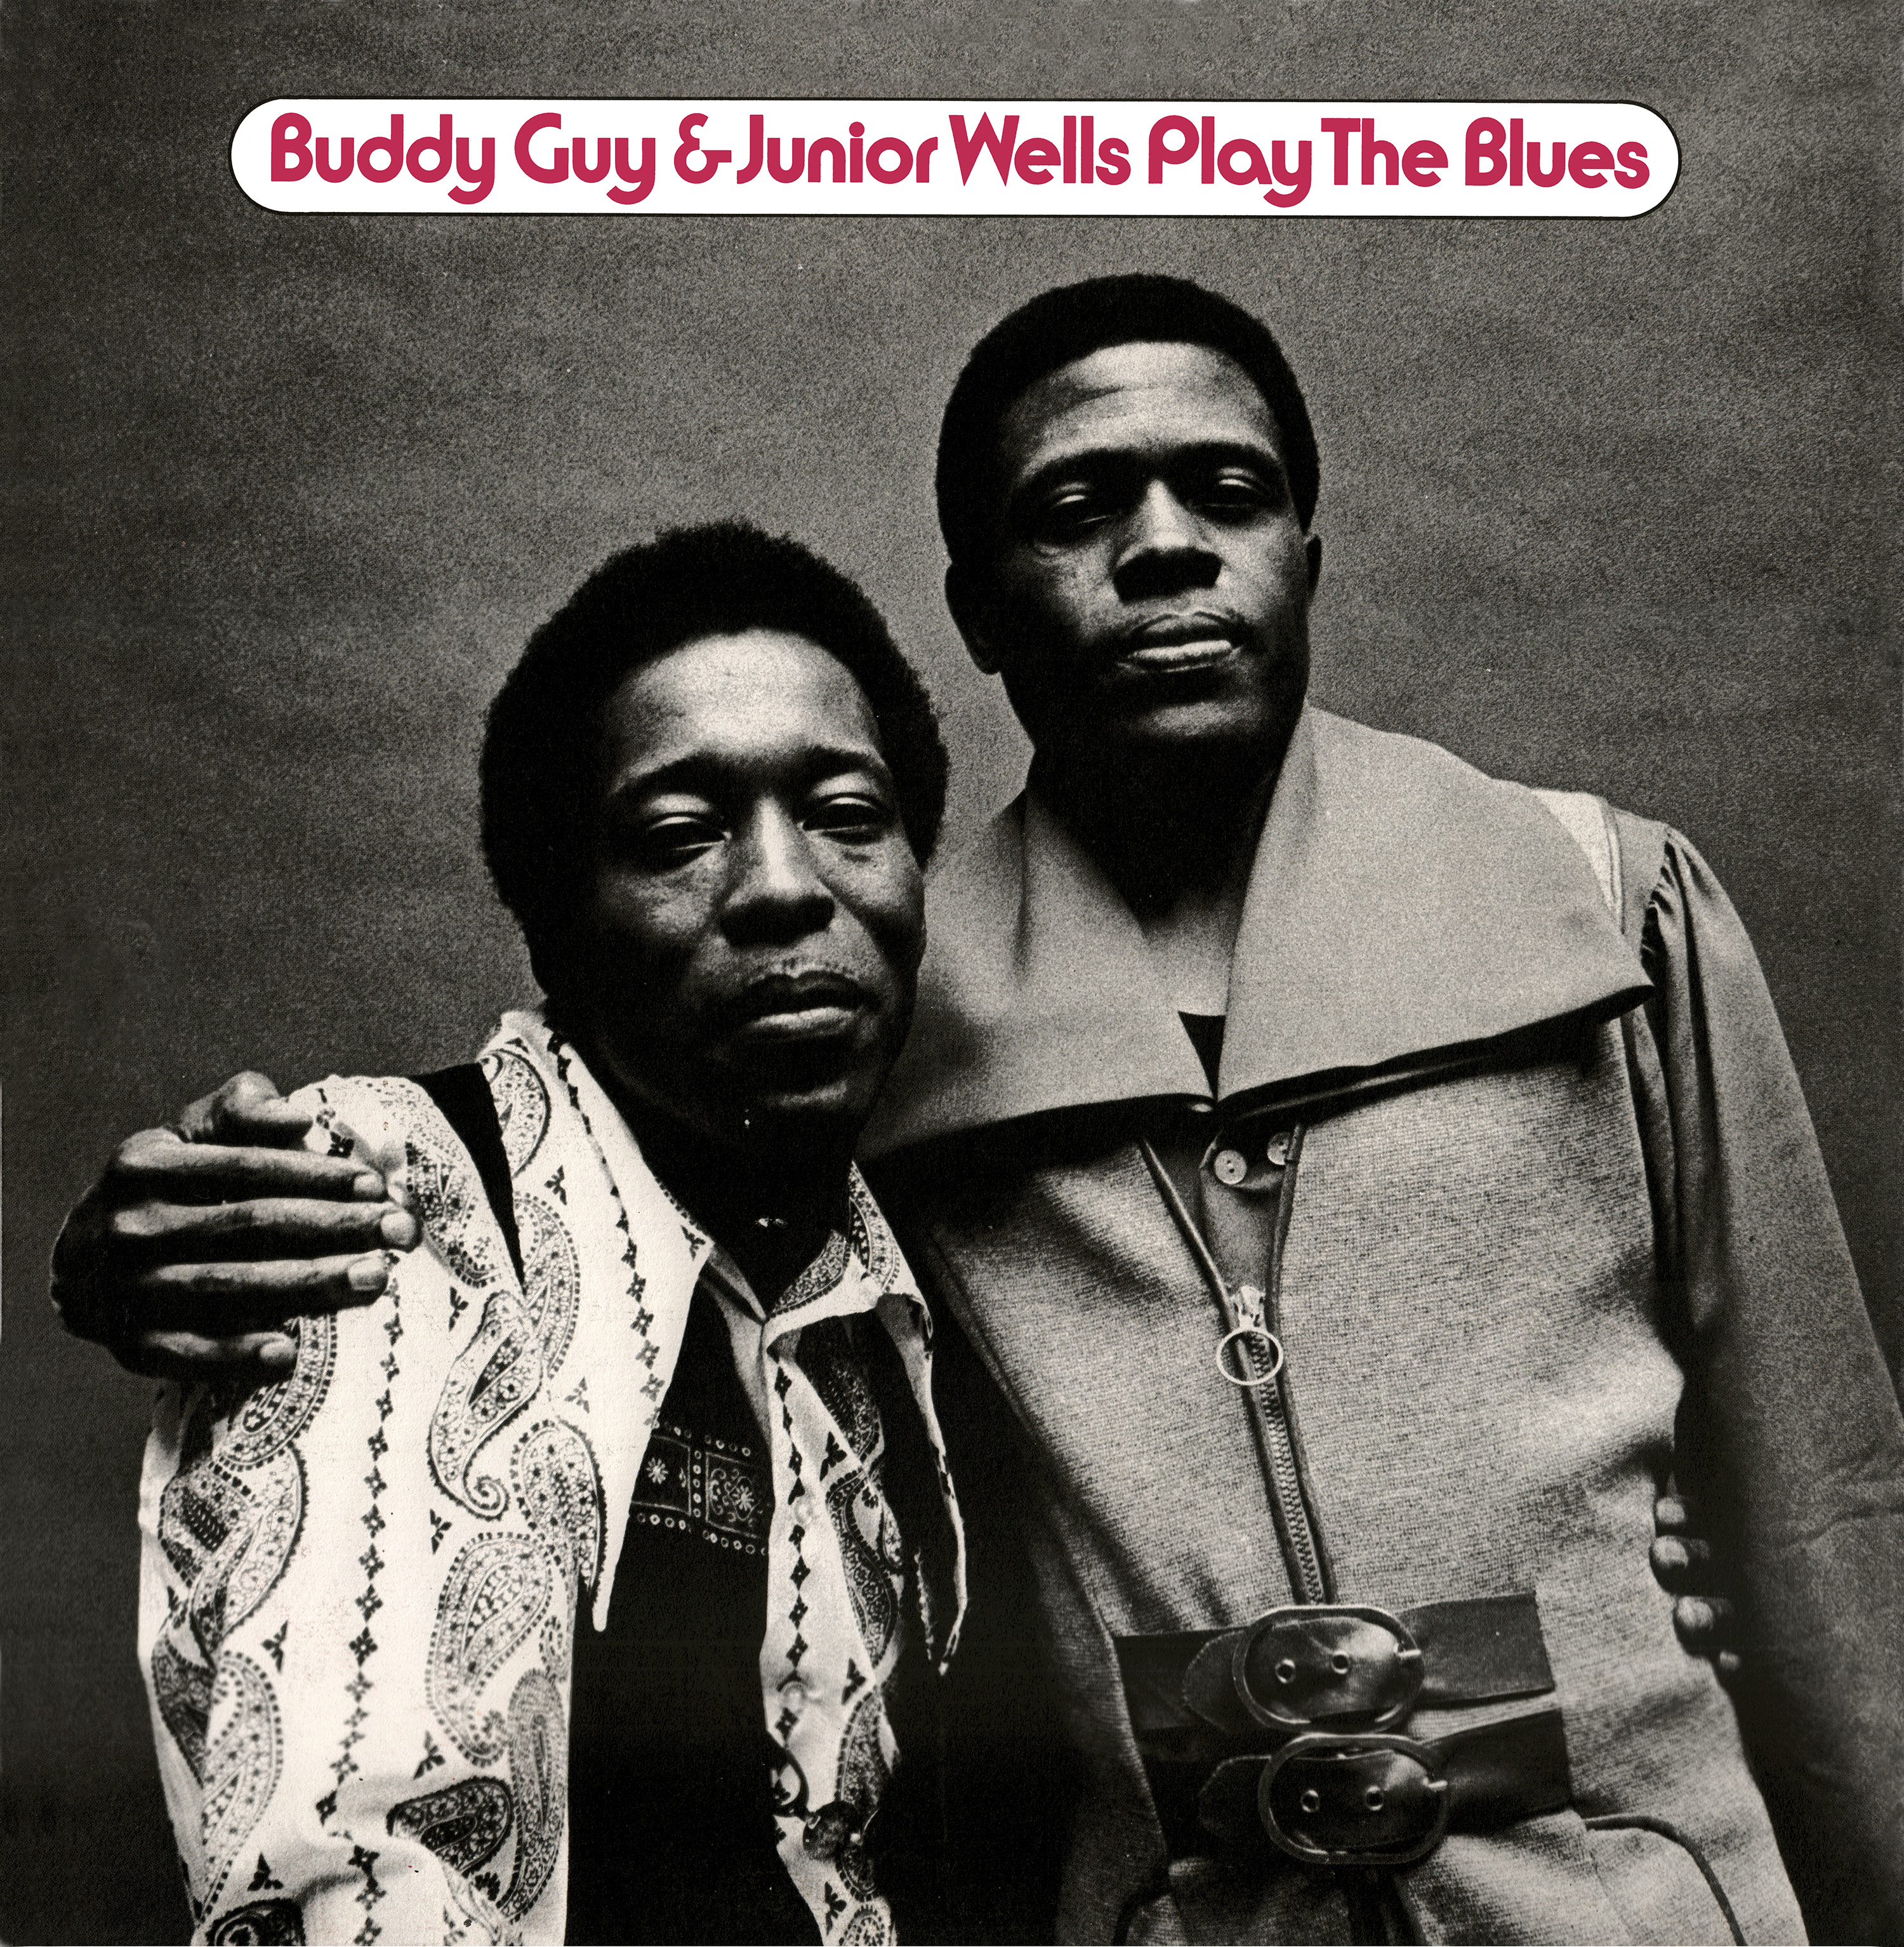 Buddy Guy & Junior Wells Play The Blues featuring Eric Clapton (180 Gram Translucent Gold Audiophile Vinyl/Limited Anniversary Edition)